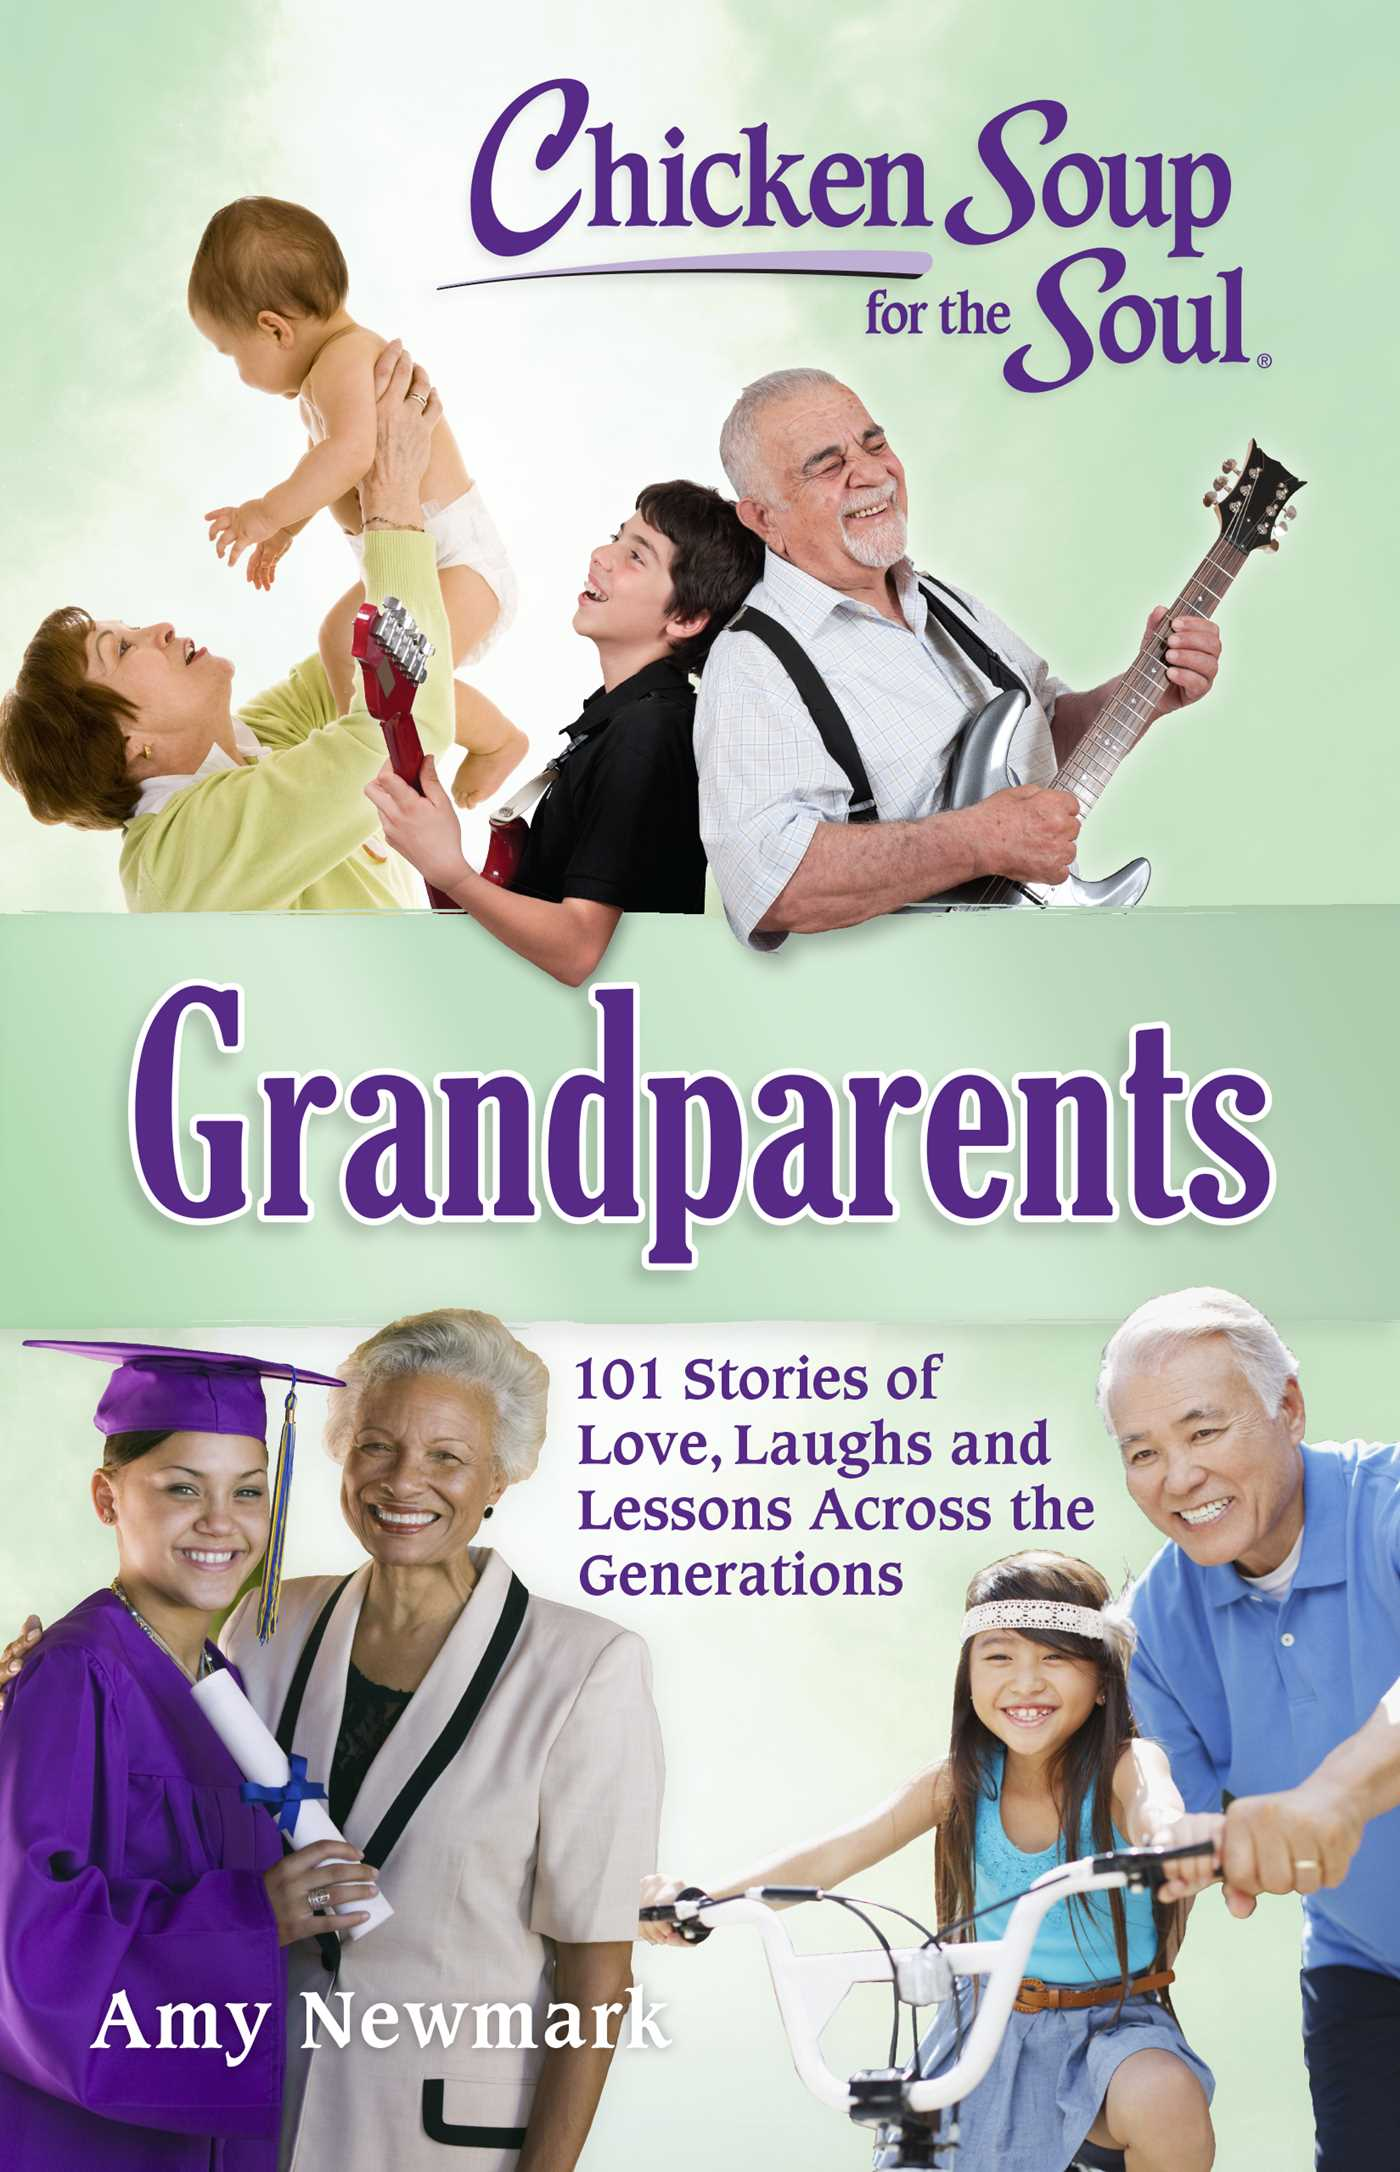 Chicken soup for the soul grandparents 9781611599862 hr